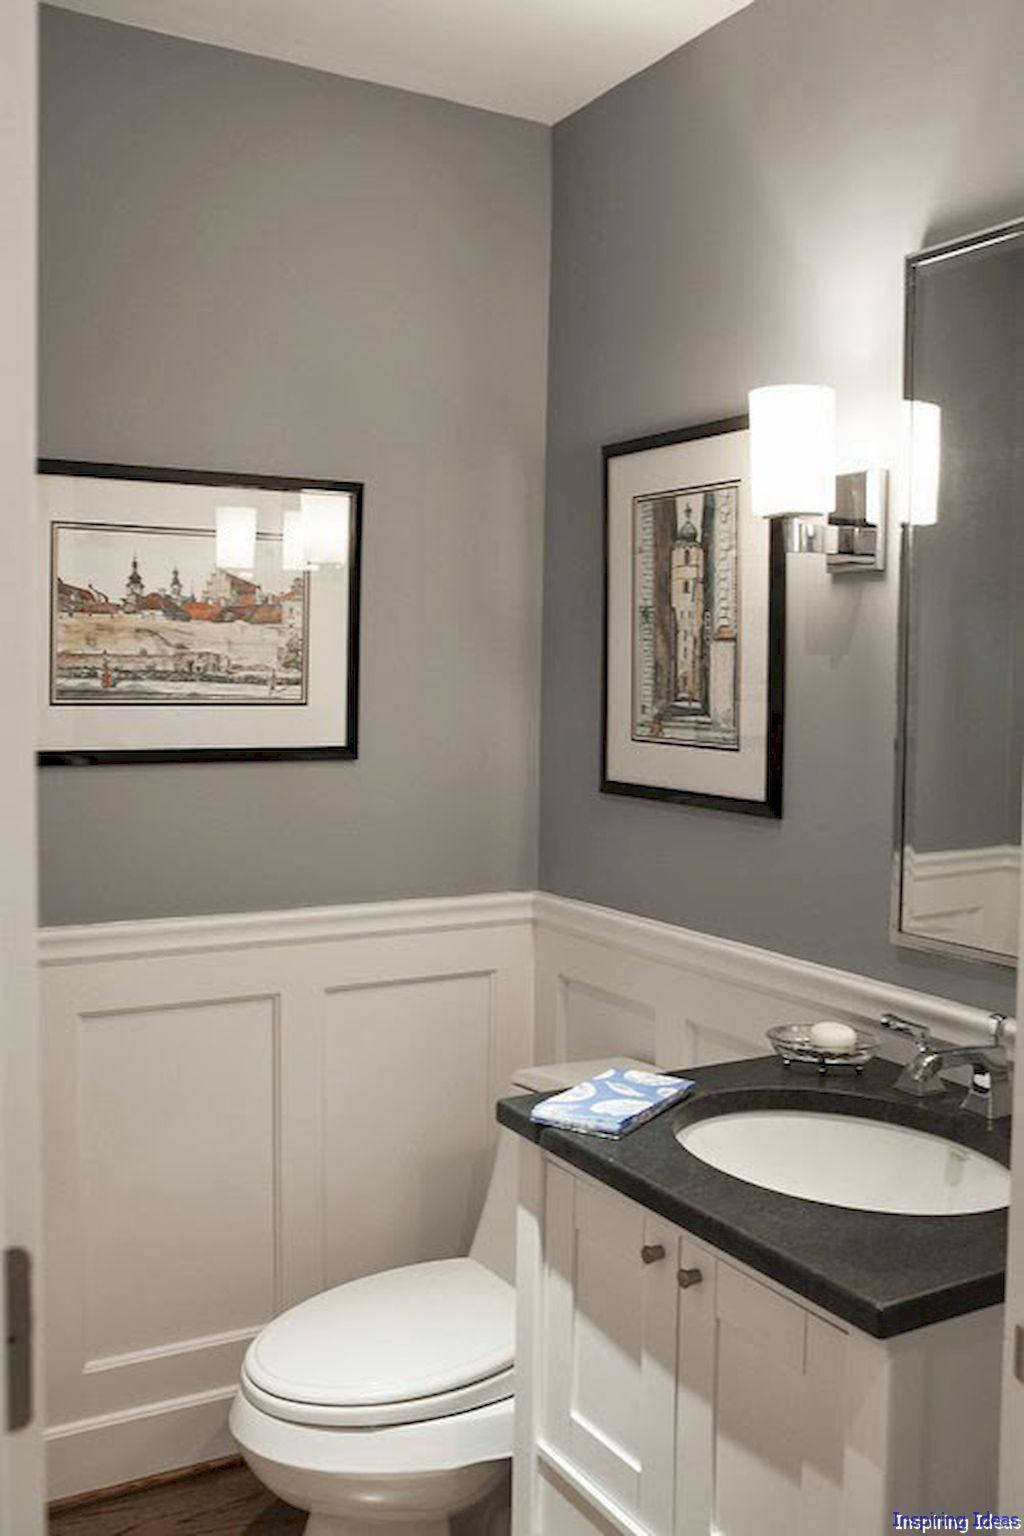 Half Bathroom Ideas A Half Bathroom Is Small However That Does Not Indicate It Is Excused From A Few Tiny Powder Rooms Small Bathroom Remodel Tiny Bathrooms